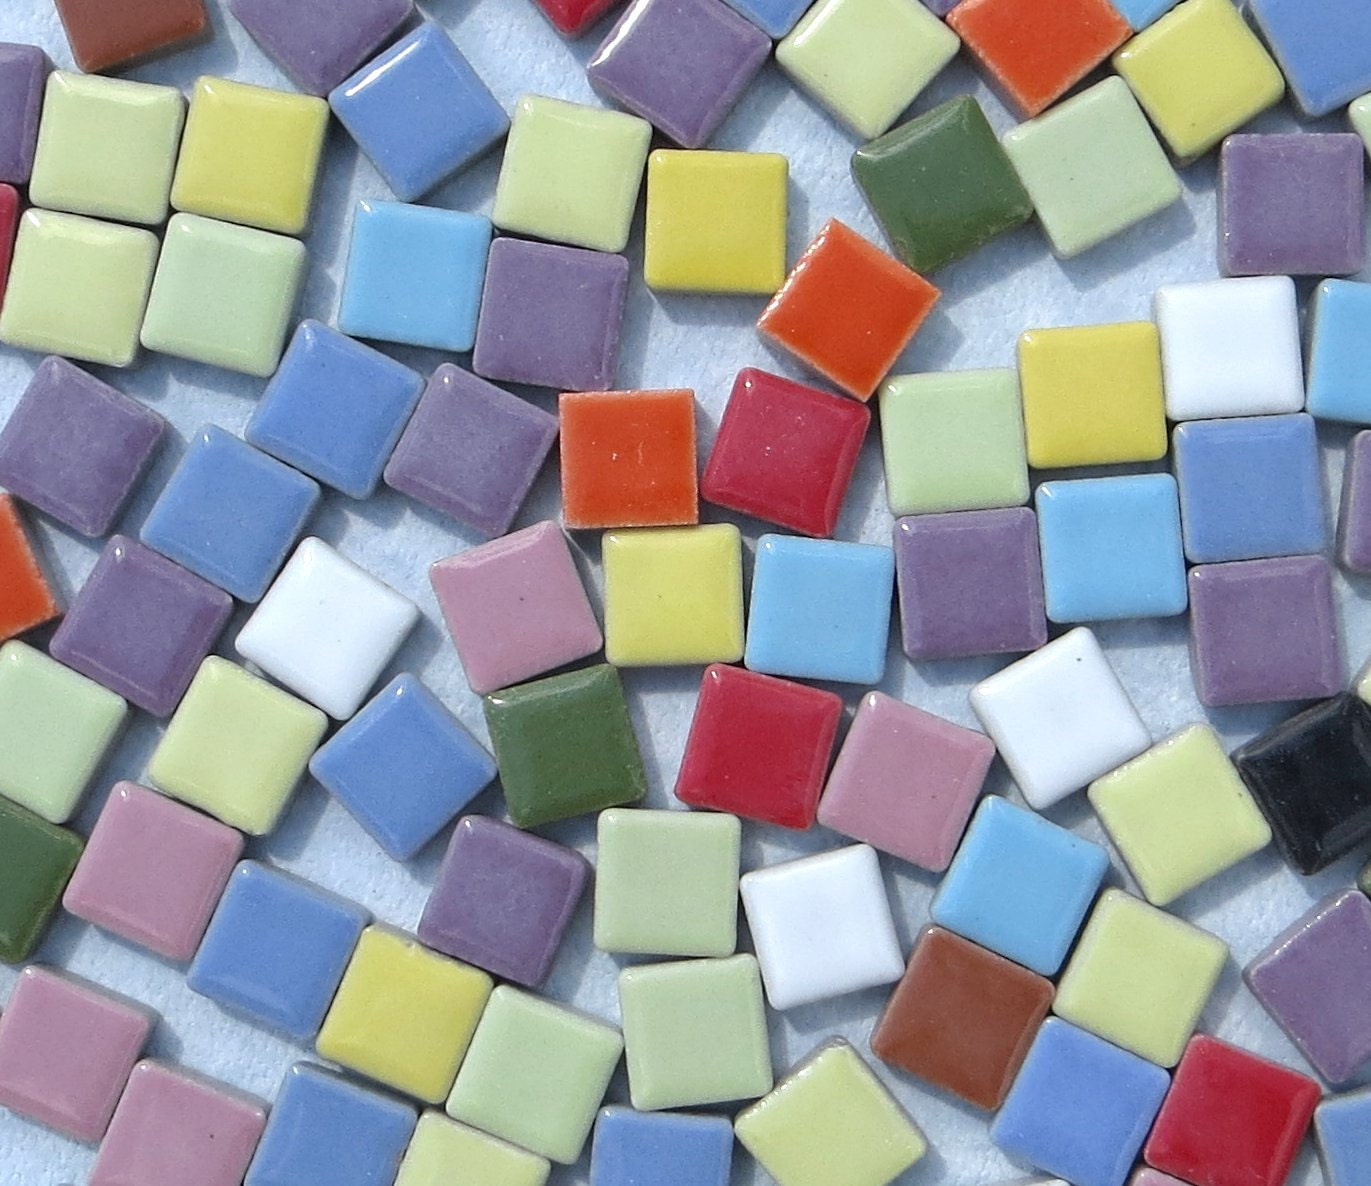 Tiny Square Mosaic Tiles In Assorted Colors Inch Ceramic Pound - 3 inch square ceramic tiles